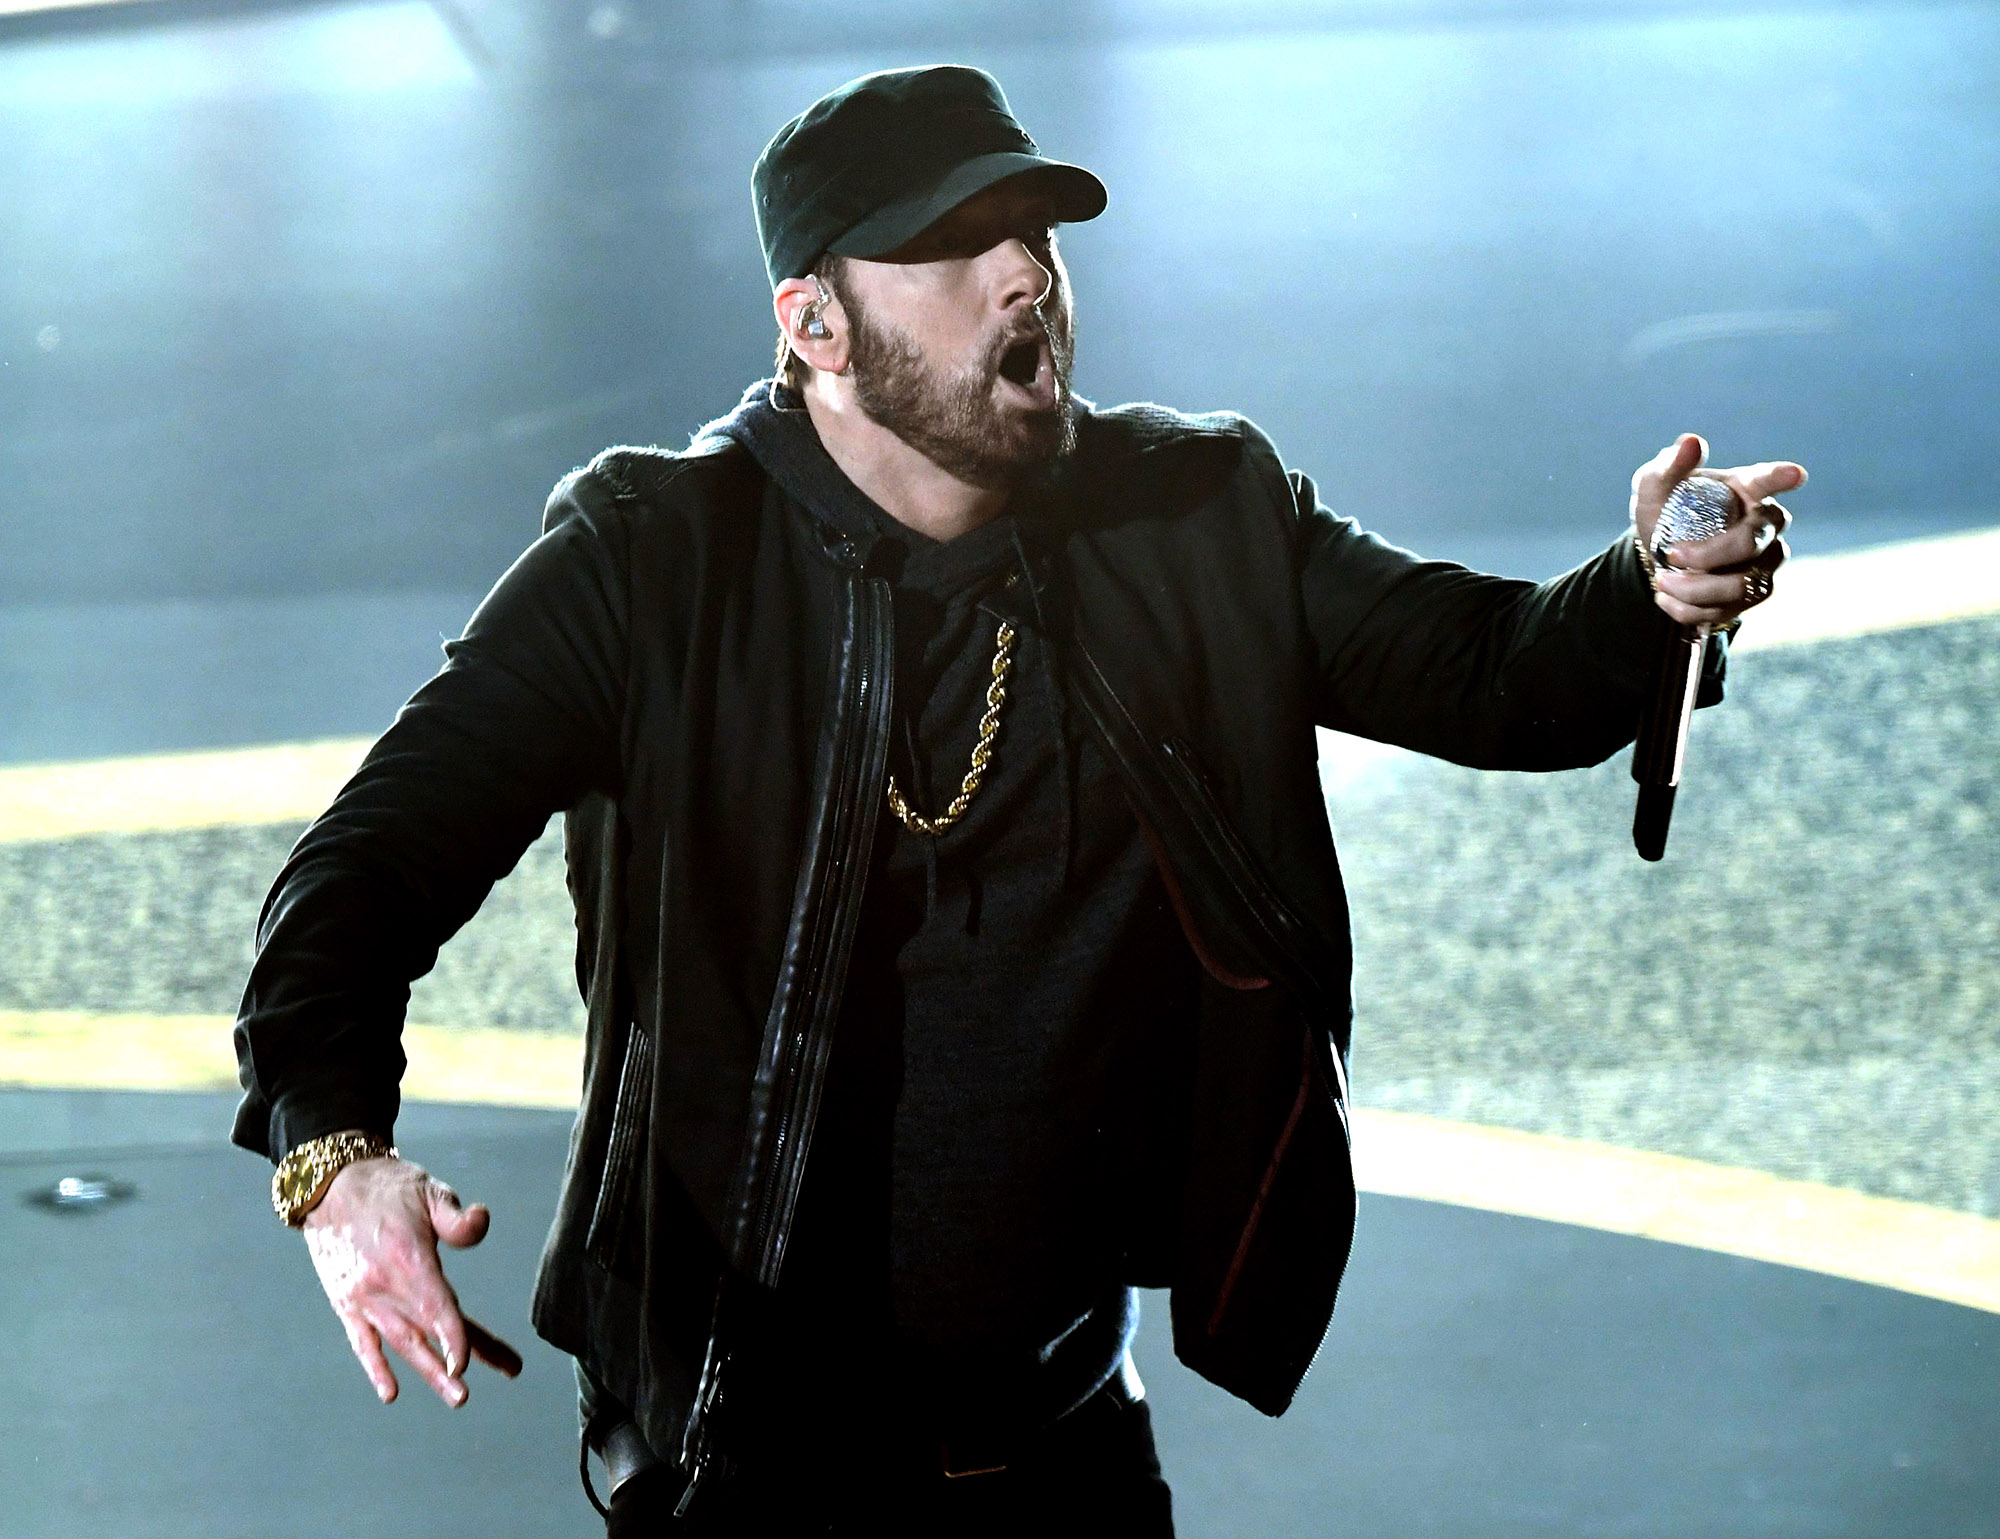 Eminem releases new song after a TikTok campaign tries to 'cancel' him